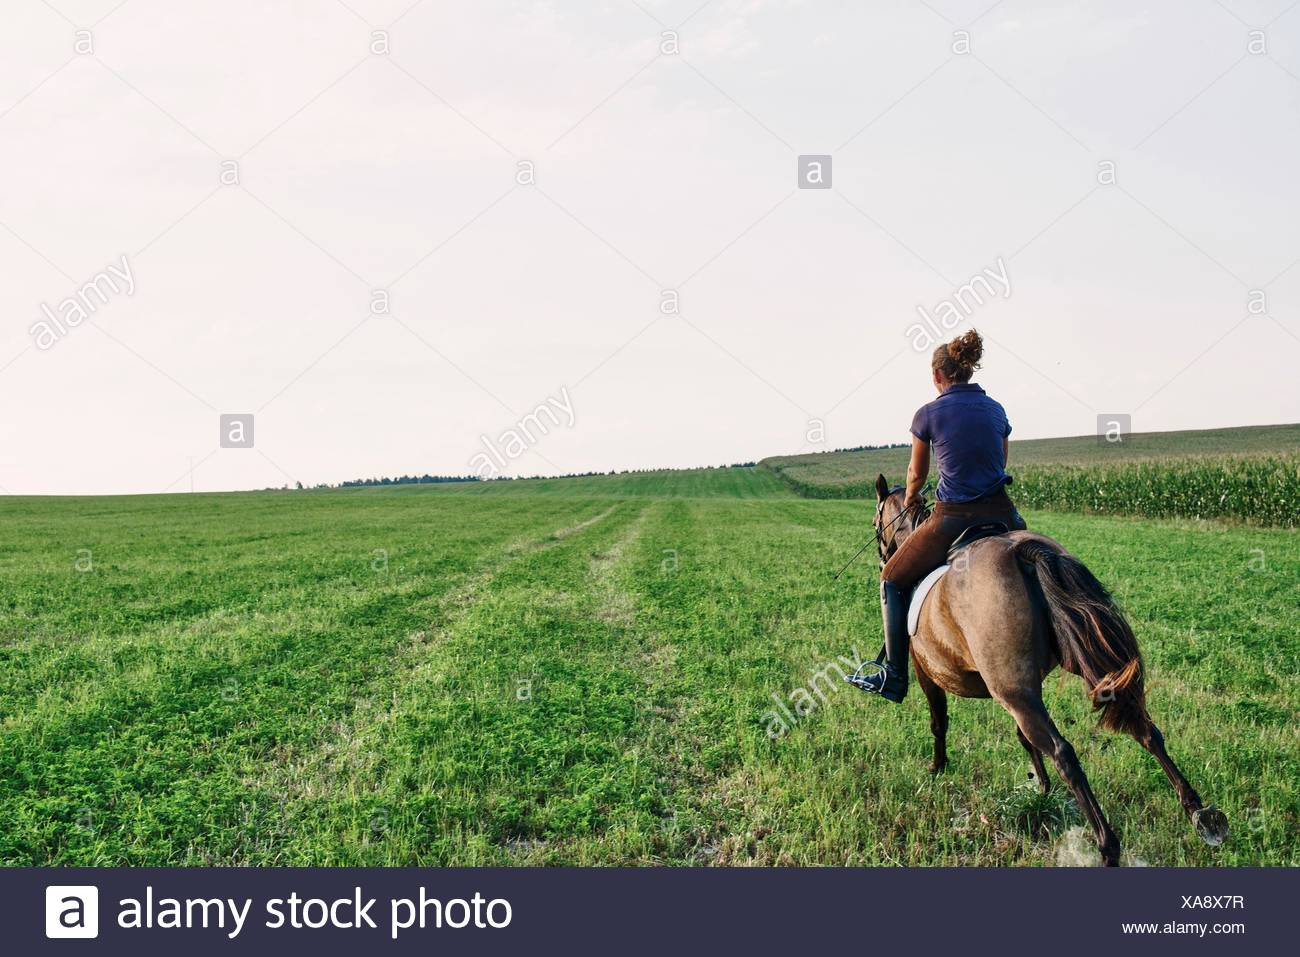 Rear view of woman galloping on bay horse in field - Stock Image